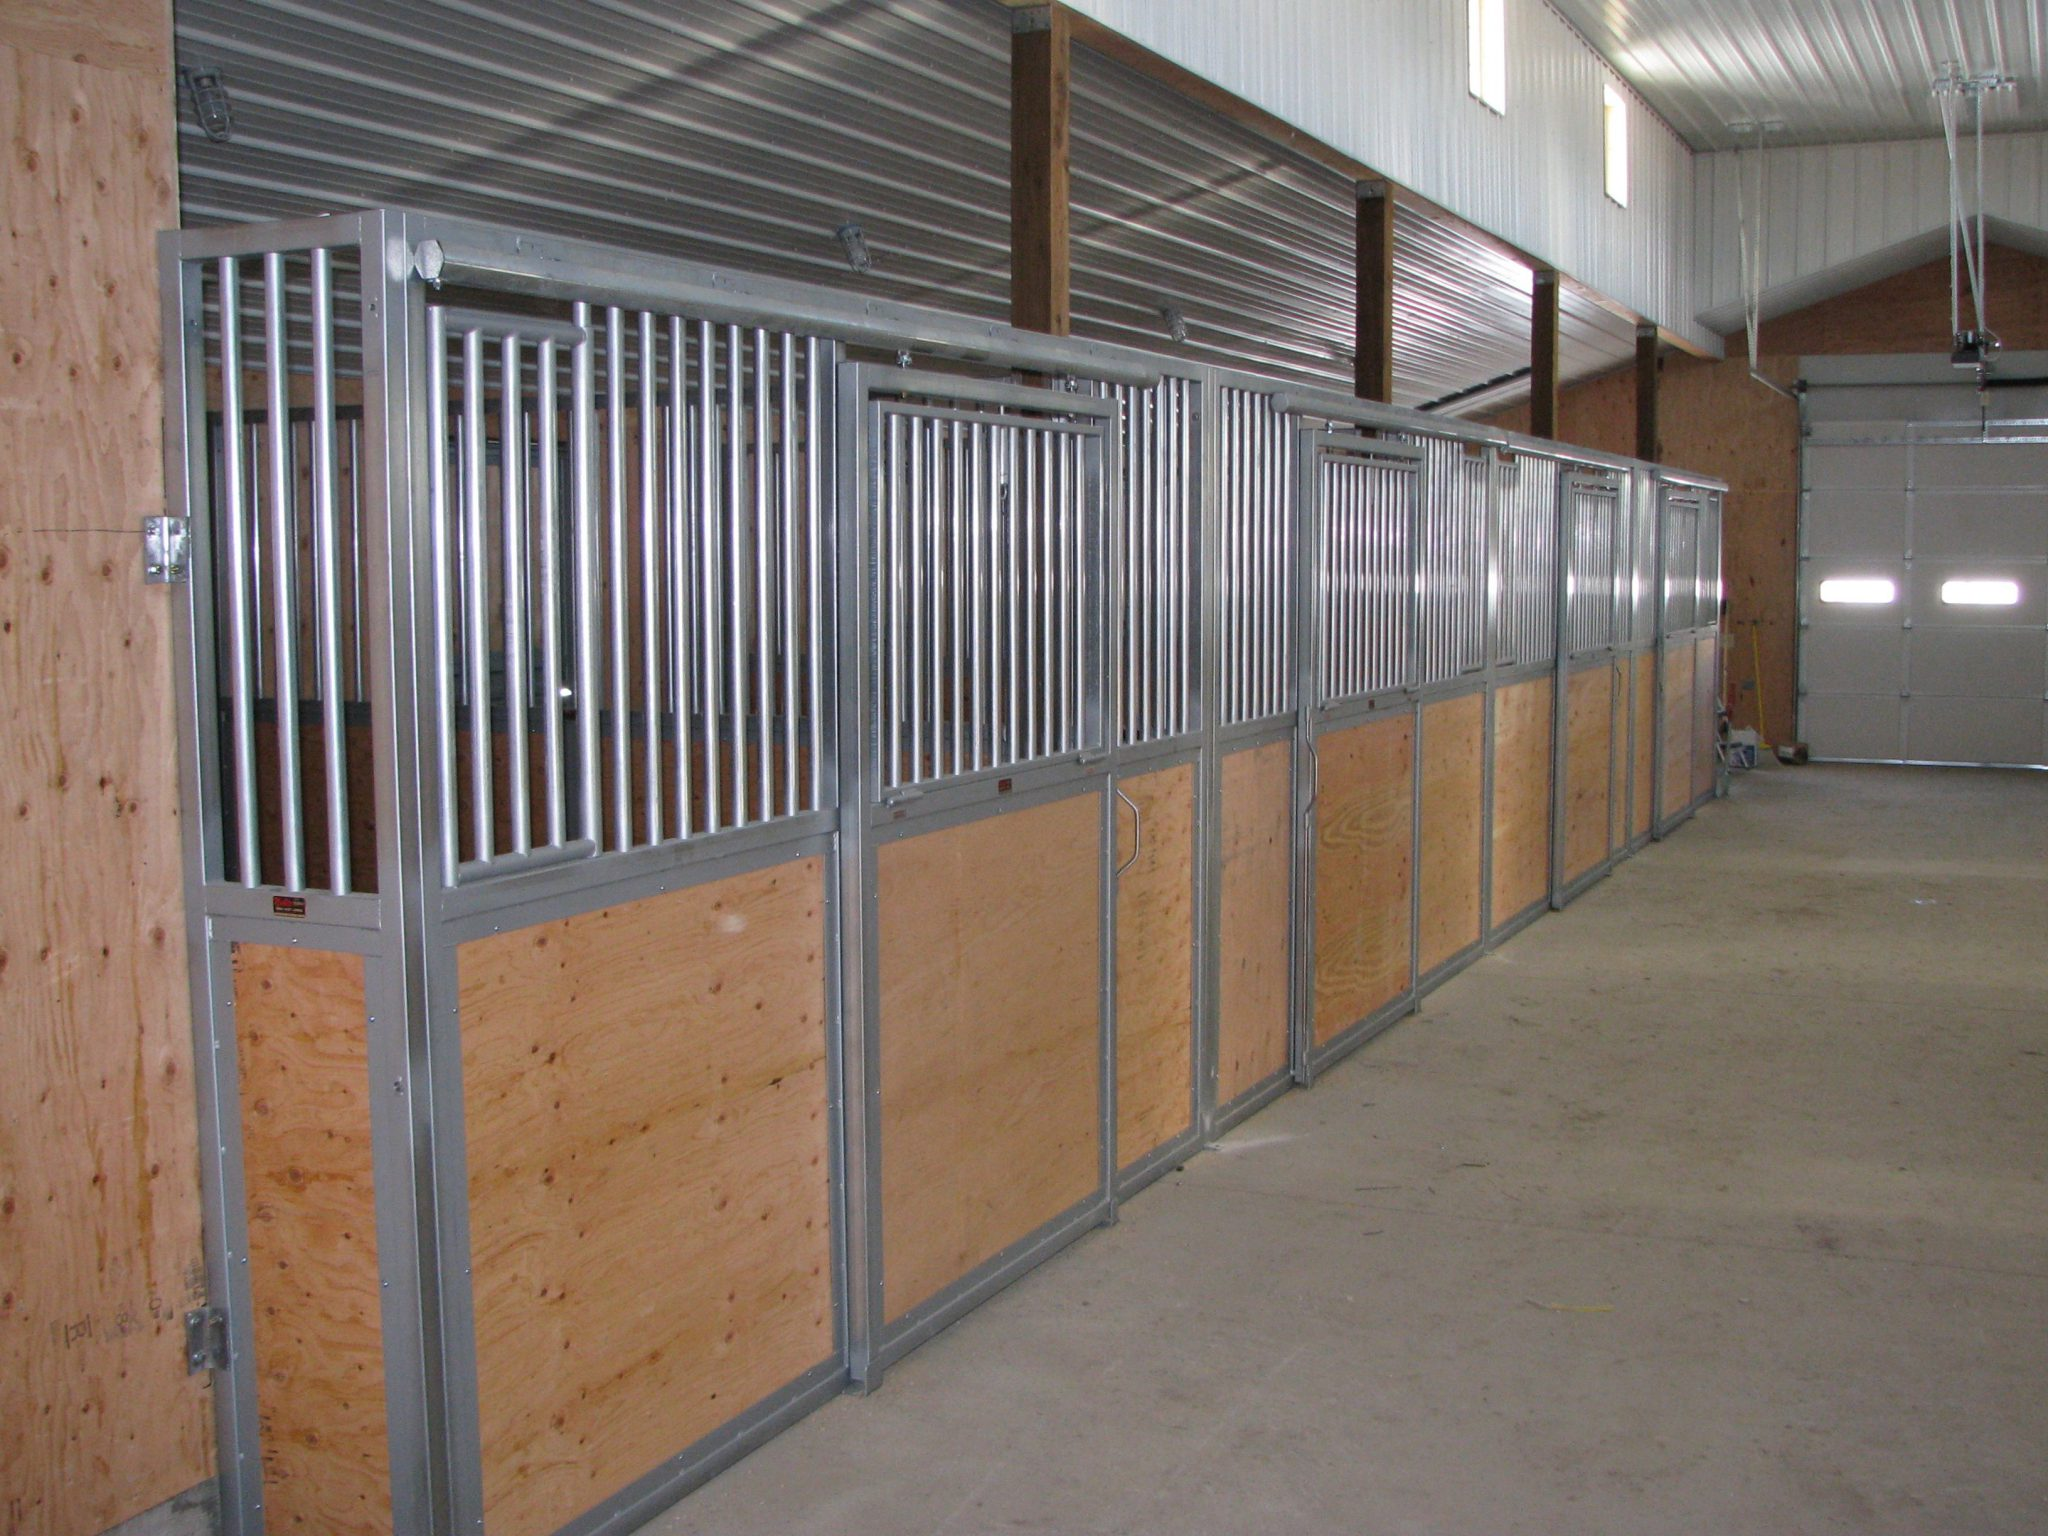 Wood and metal stall enclosures line one wall of a stable.